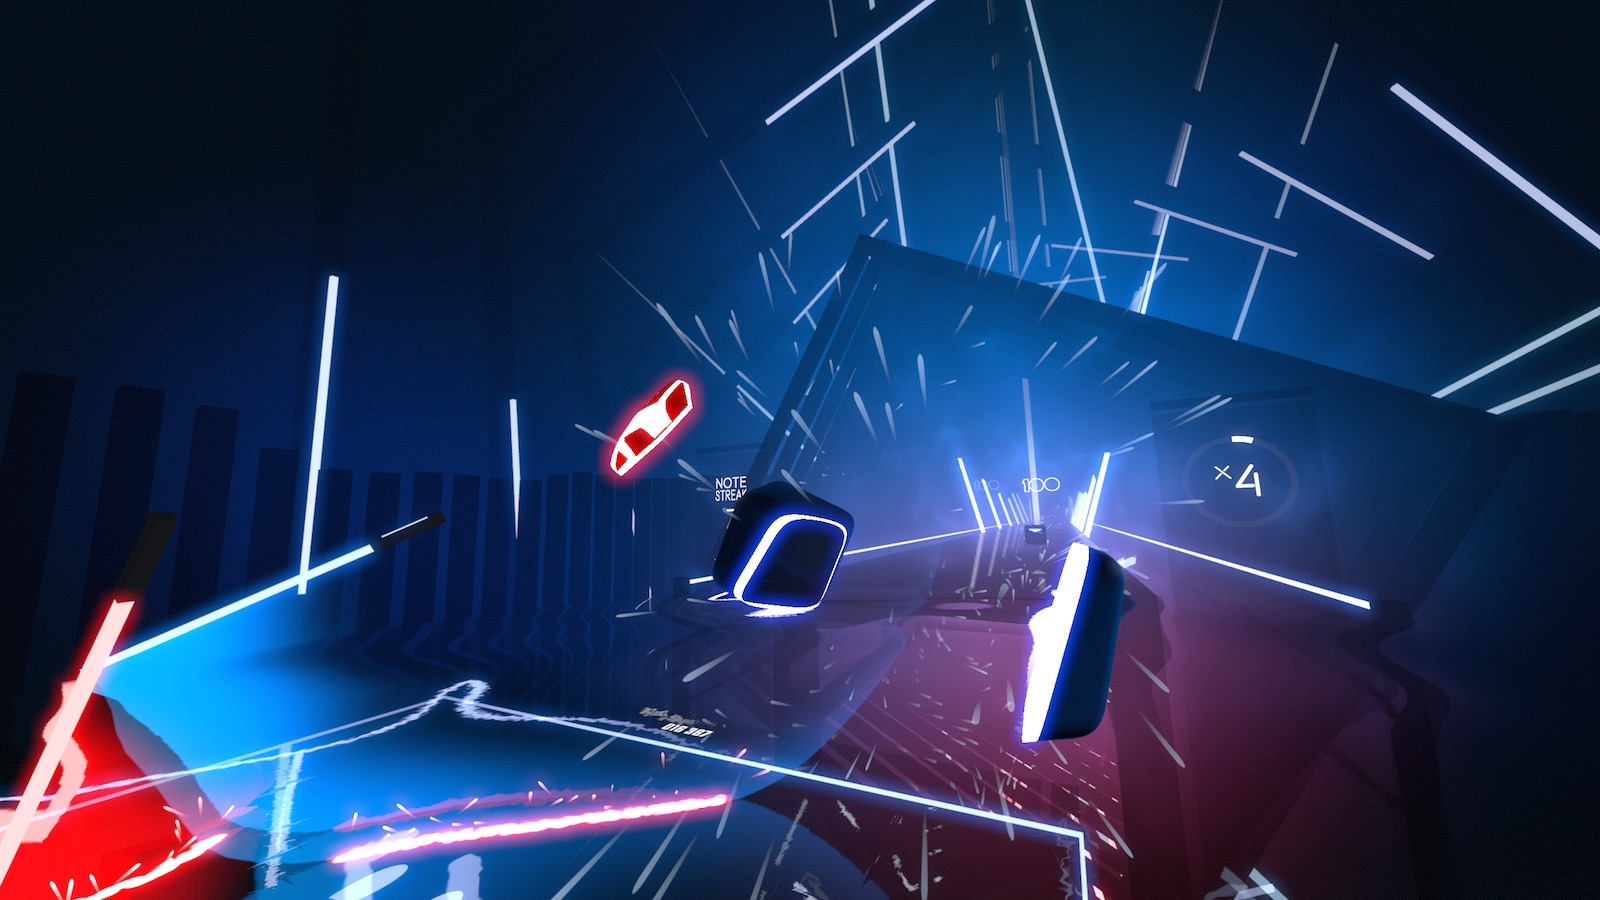 Beat Saber VR Game Review